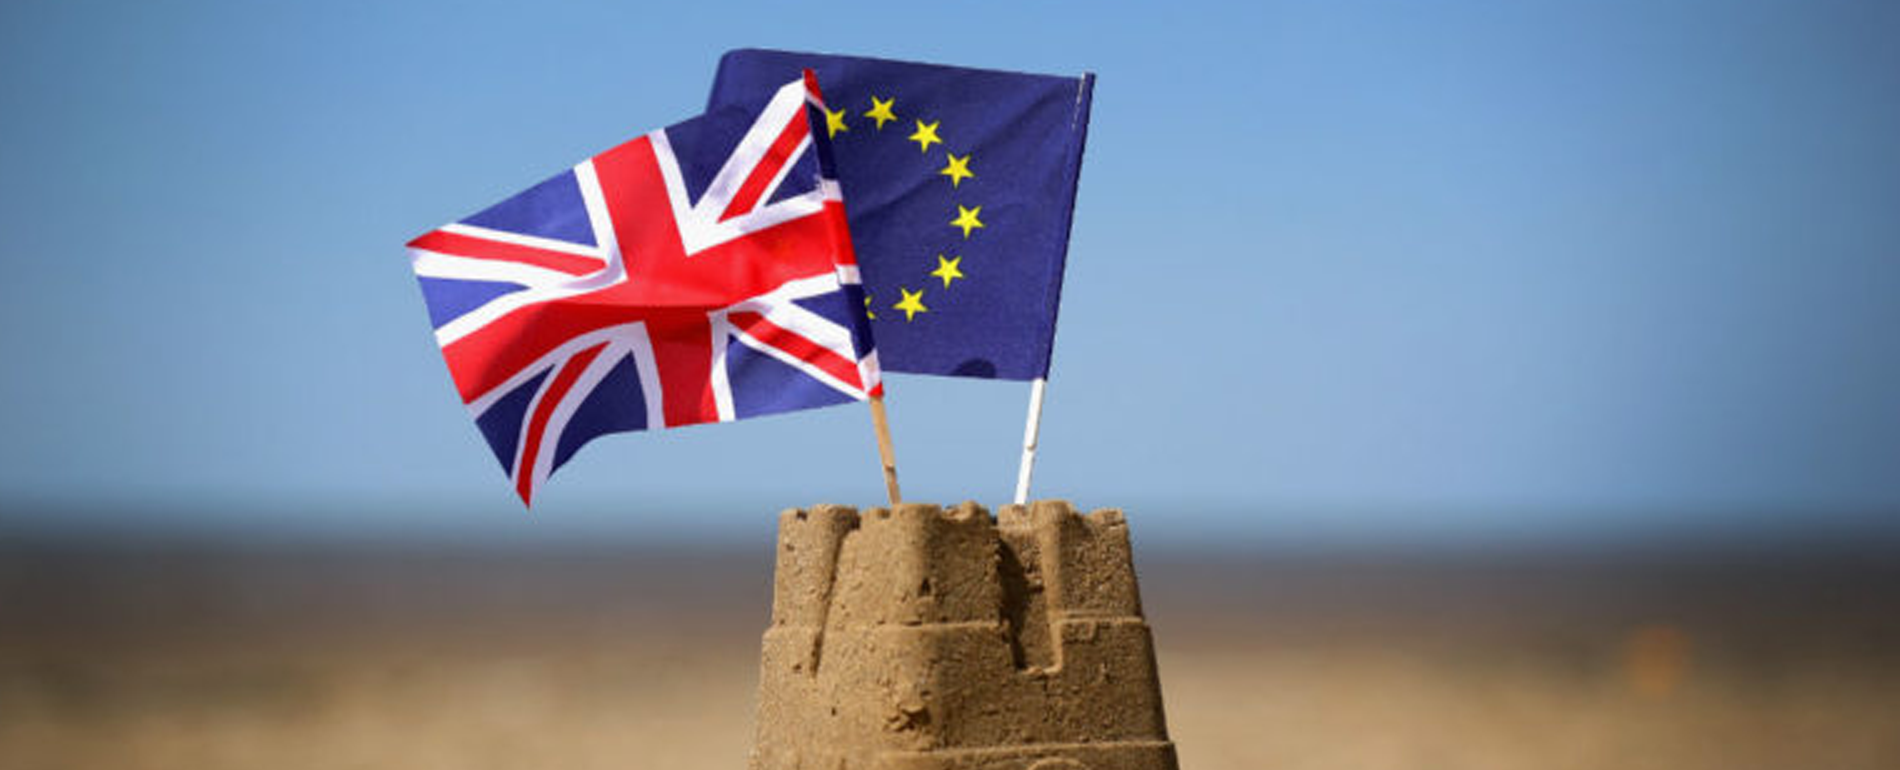 The UK Focus on Brexit: Managing the Impact of Brexit On Restaurant Staffing